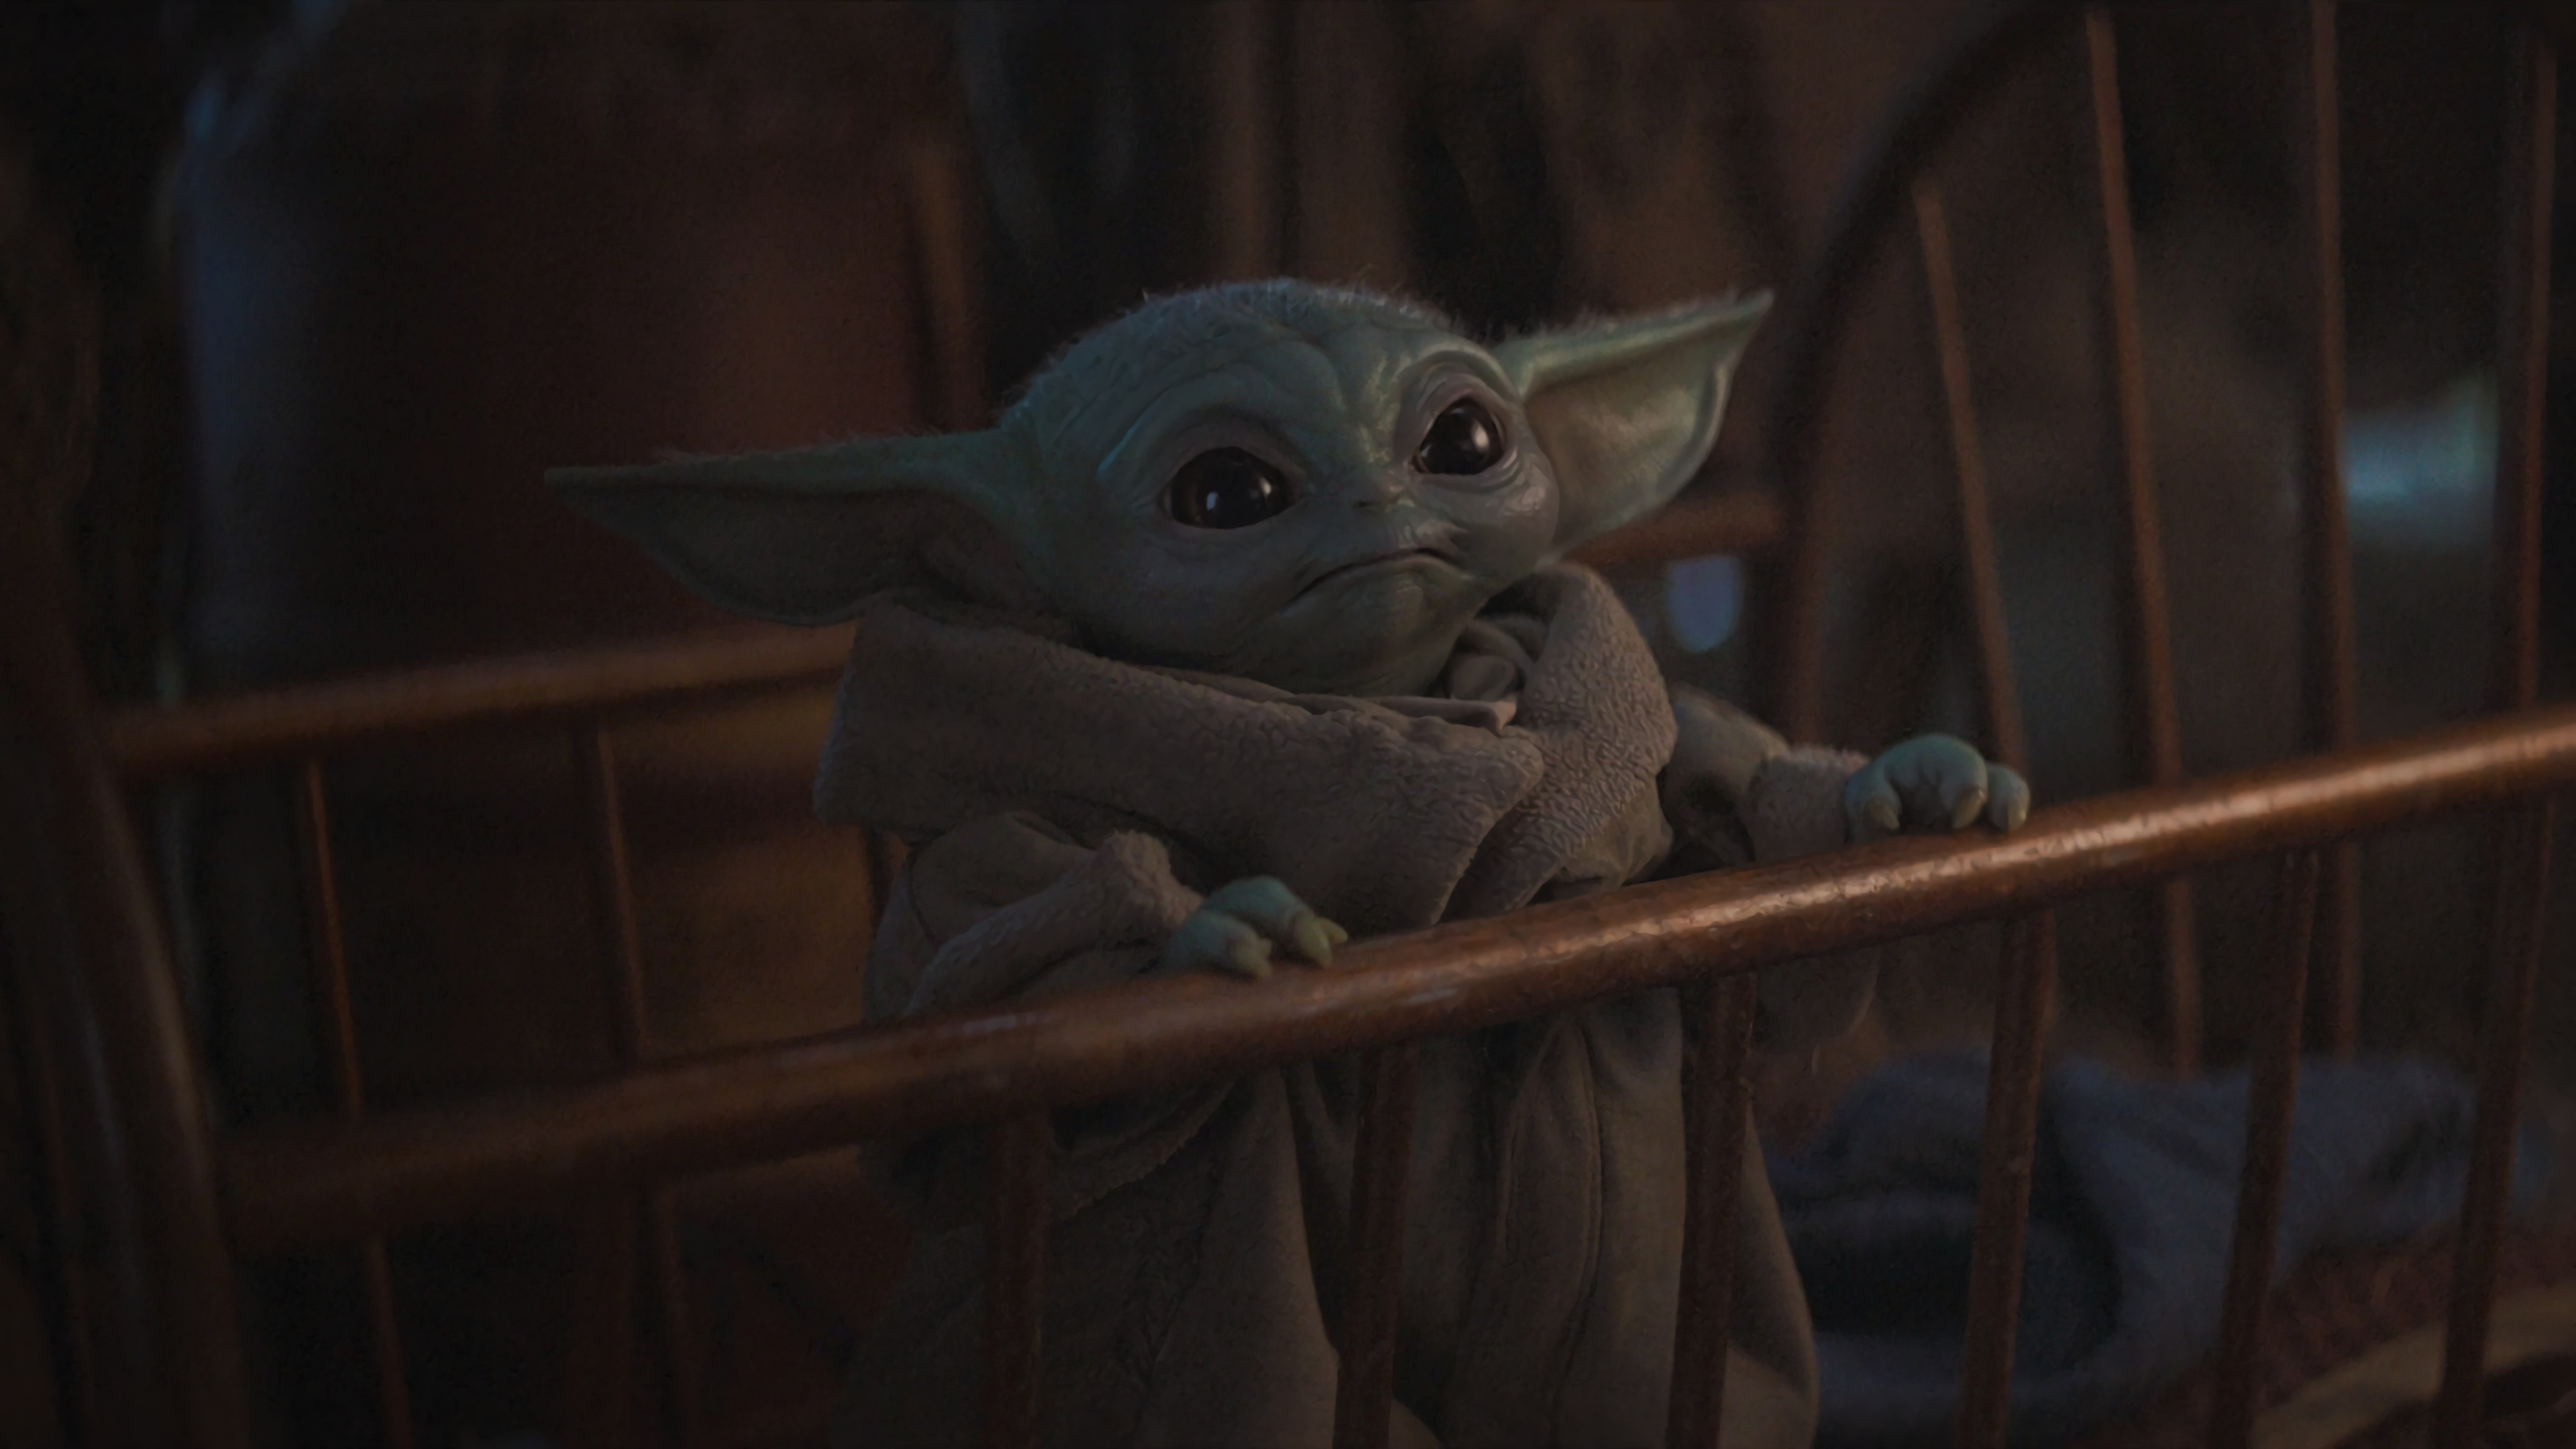 2560x1440 Cute Baby Yoda From Mandalorian 1440p Resolution Wallpaper Hd Tv Series 4k Wallpapers Images Photos And Background